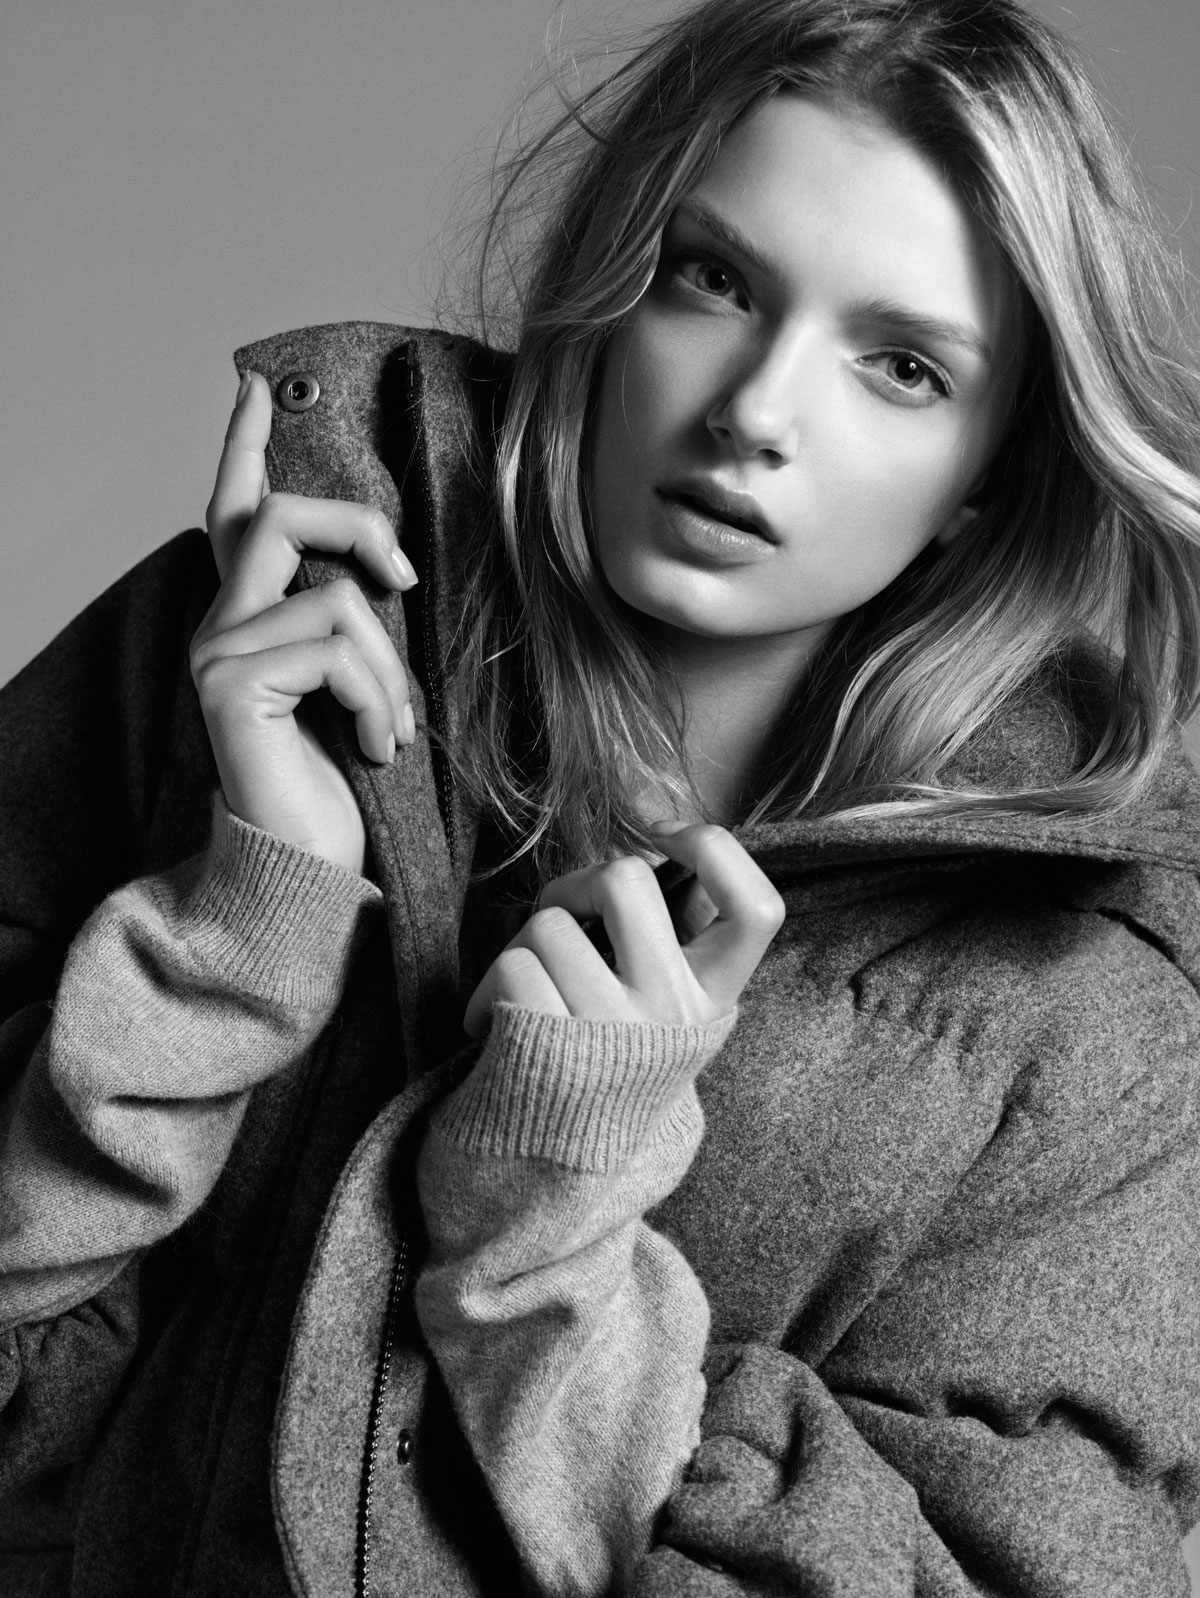 Lily Donaldson Down to Earth Model B/W Photo